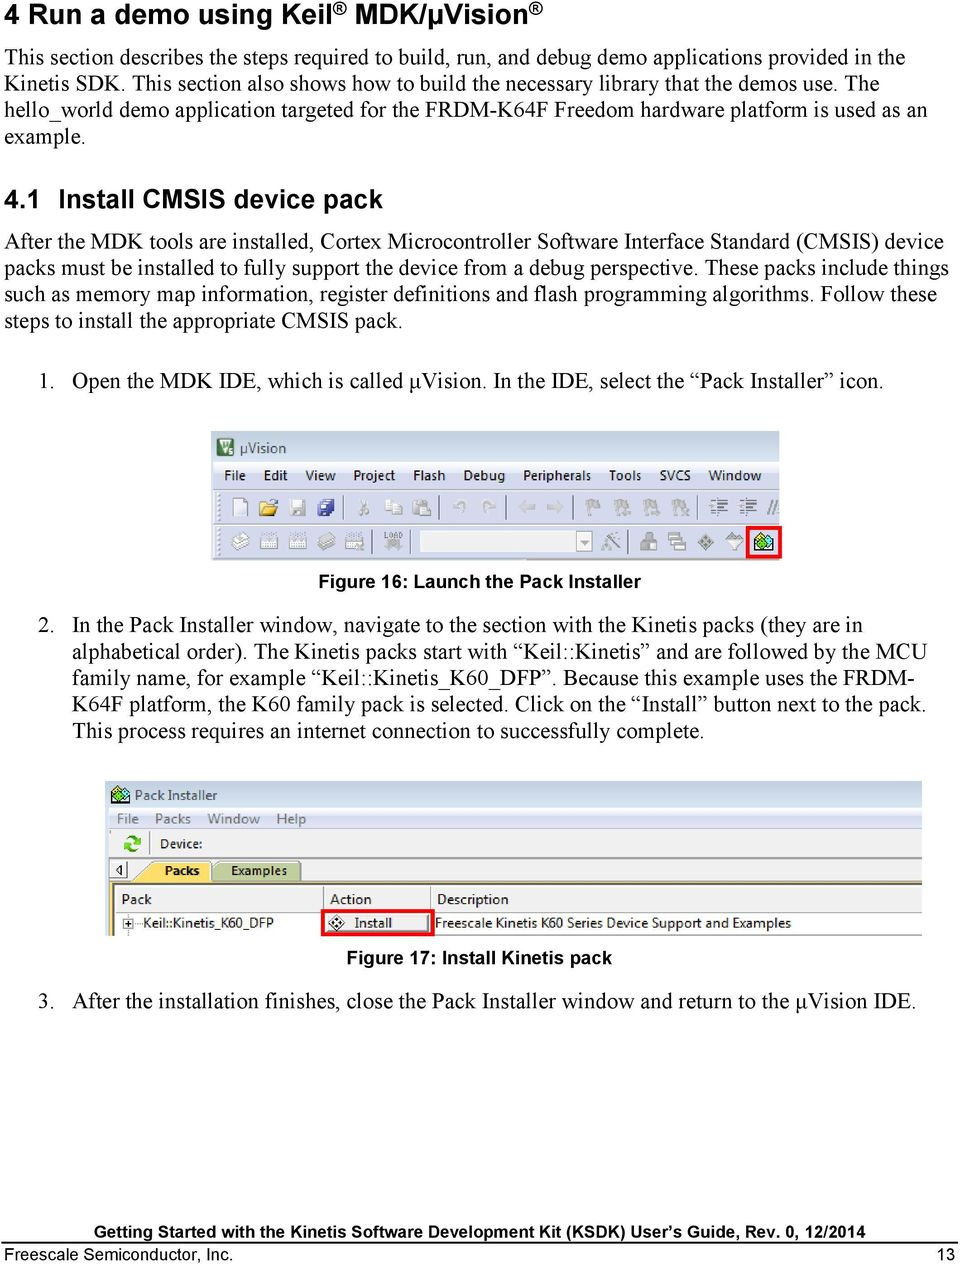 1 Install CMSIS device pack After the MDK tools are installed, Cortex Microcontroller Software Interface Standard (CMSIS) device packs must be installed to fully support the device from a debug